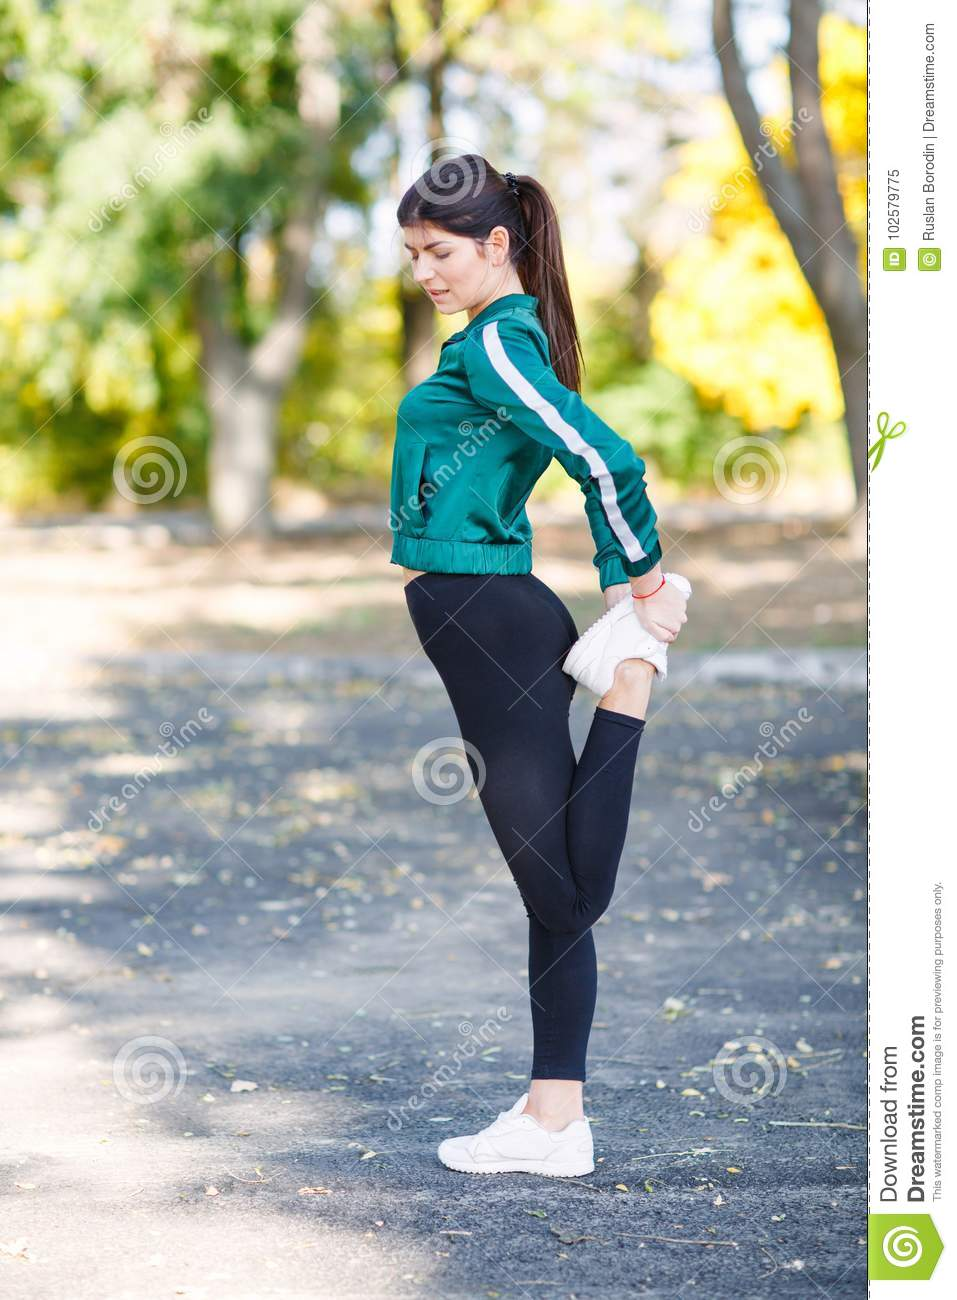 A young sporty woman with perfect body doing exercises outdoor.